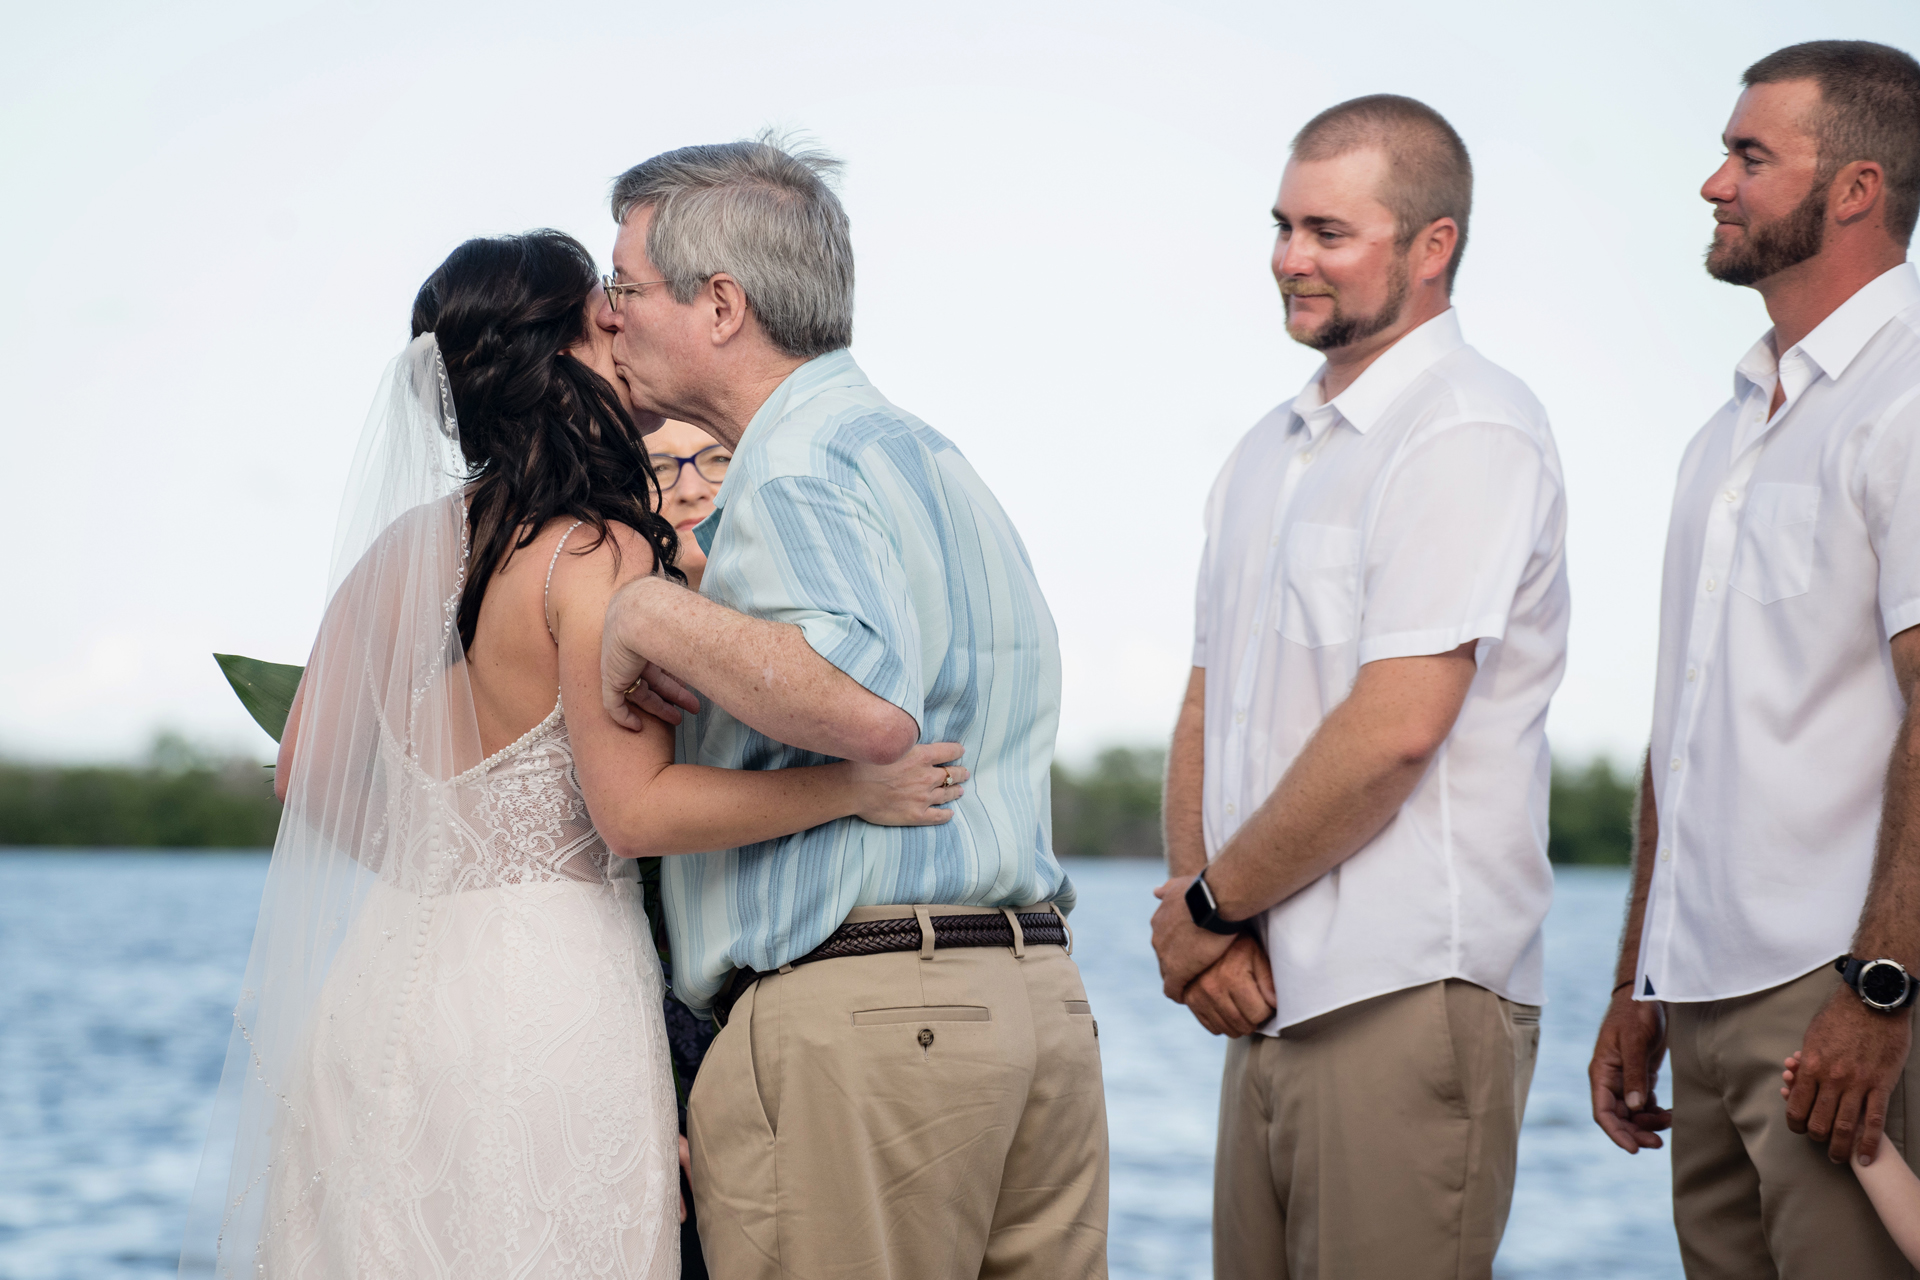 Florida Keys Beach Wedding Ceremony Picture - Bride Getting Dad Kiss | The bride's father kisses his daughter's cheek after escorting her down the aisle